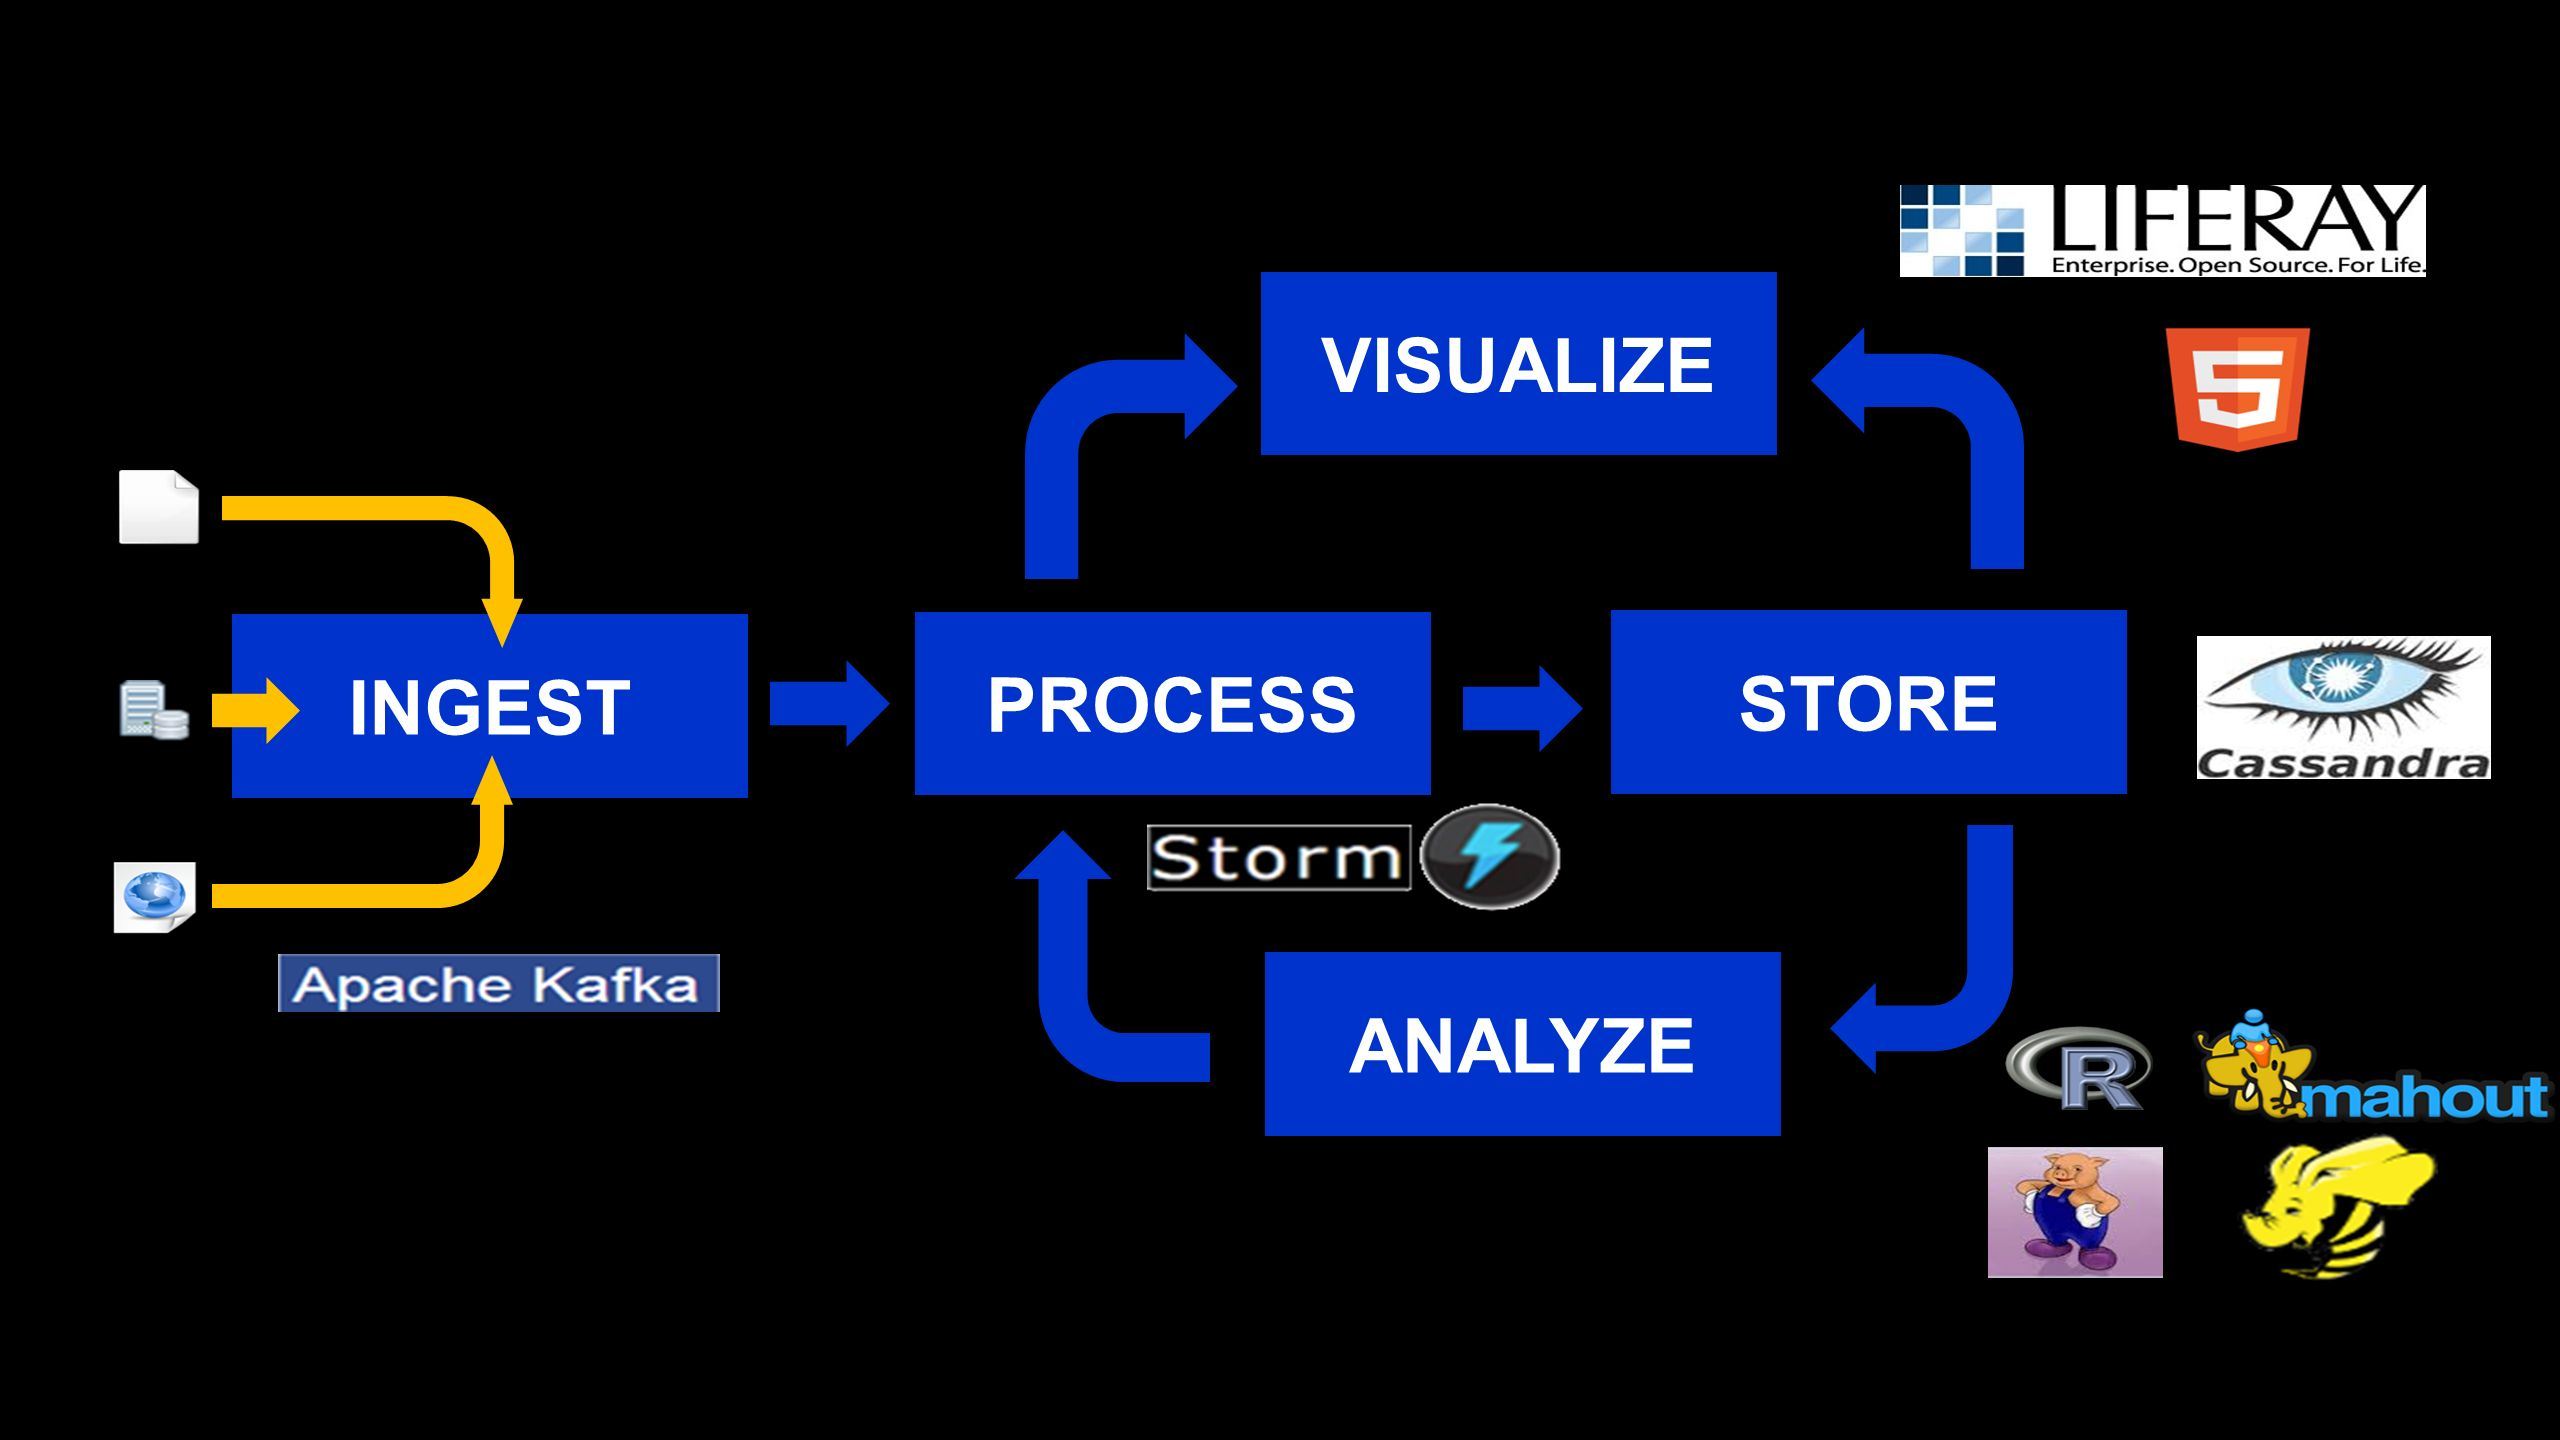 VISUALIZE INGEST PROCESS STORE ANALYZE